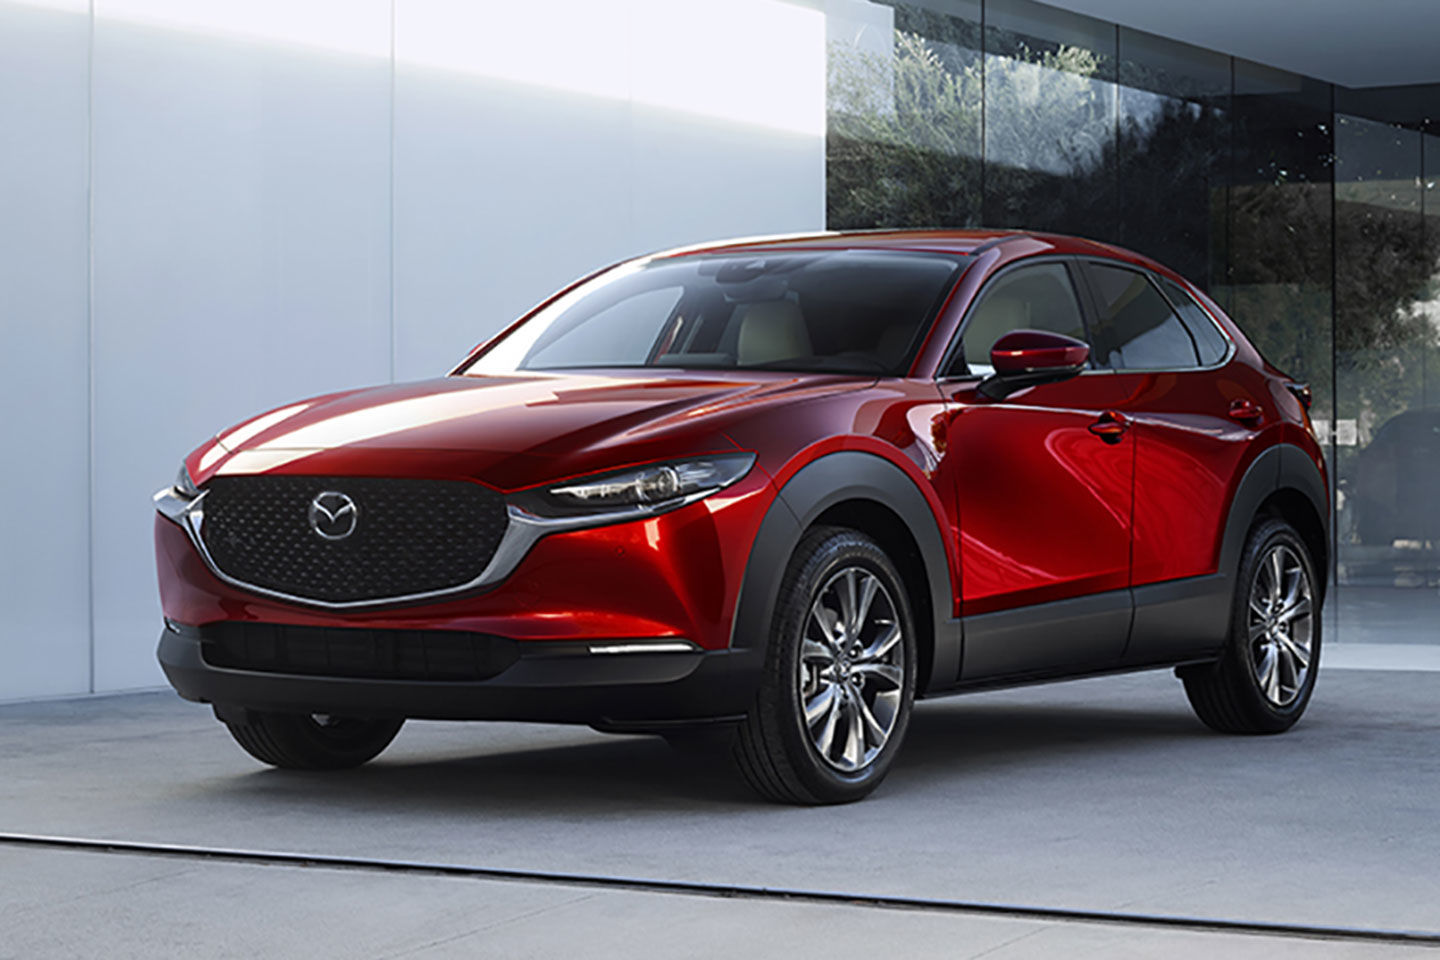 Unveiling of the Mazda CX-30 Compact Crossover SUV